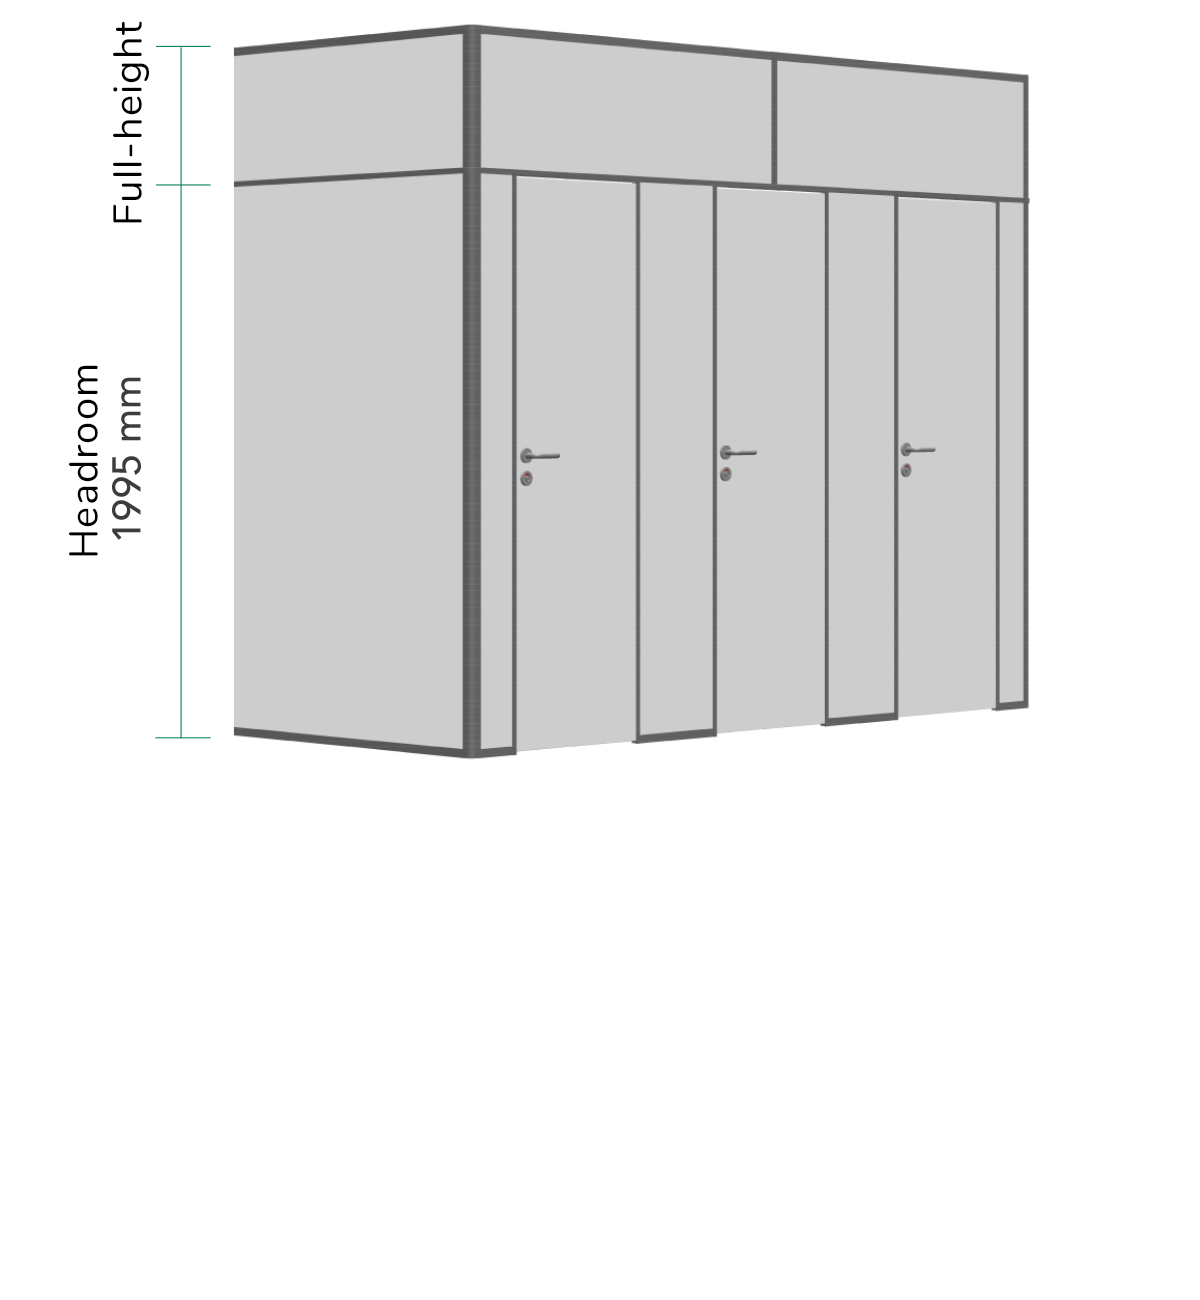 Full-height with panels